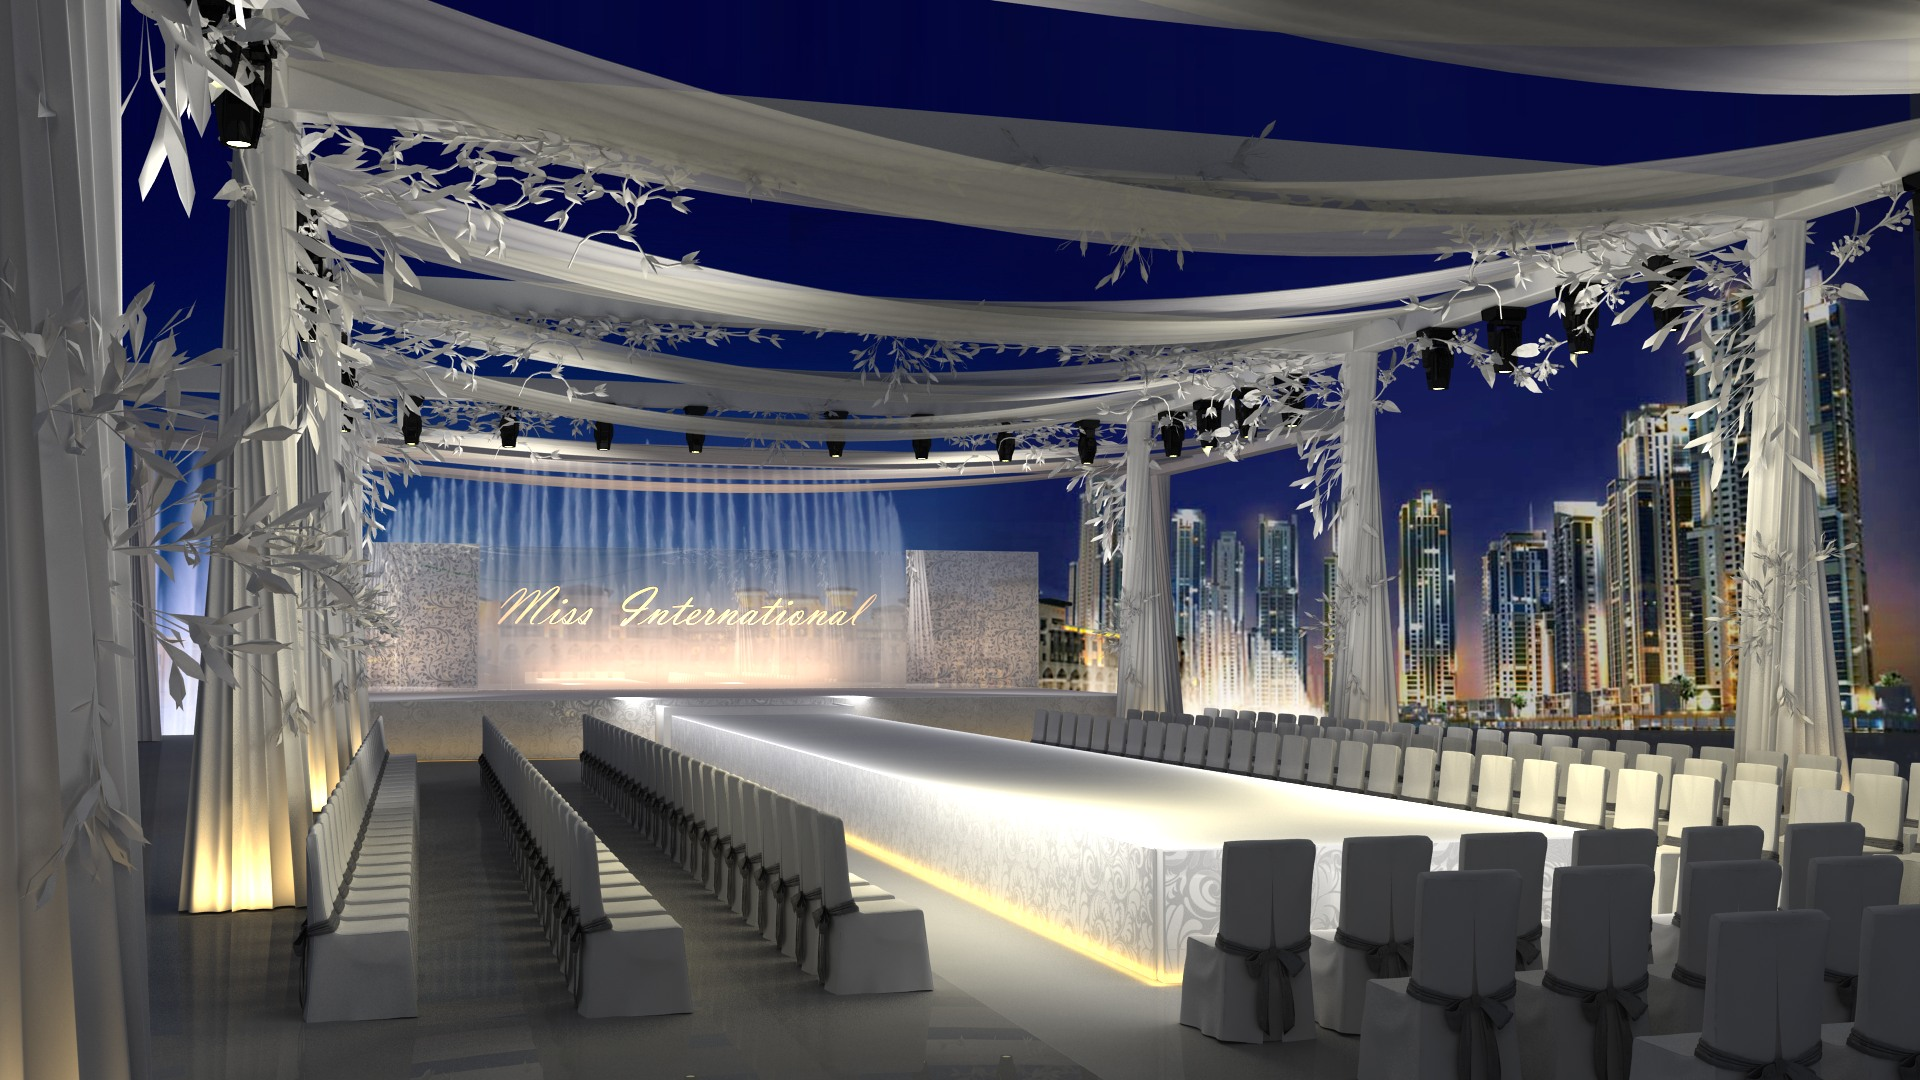 Fashion Show Stage Design Architecture Plans Images Galleries With A Bite